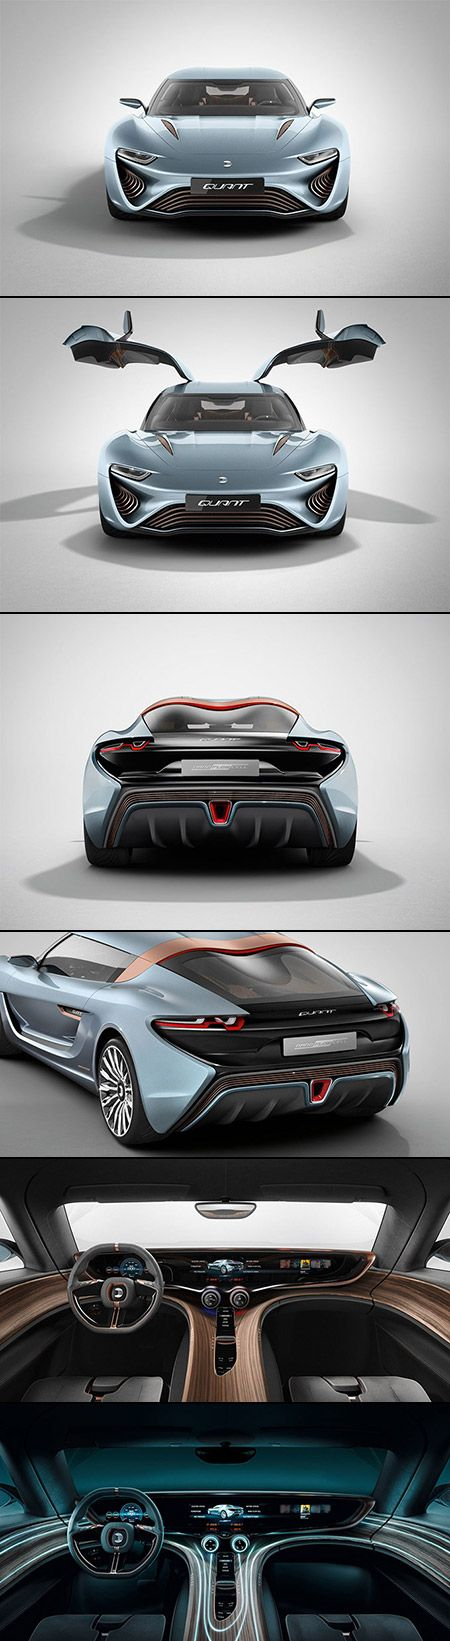 QUANT e-Sportlimousine - The Salt Water-Powered Car with 912 Horsepower - TechEBlog